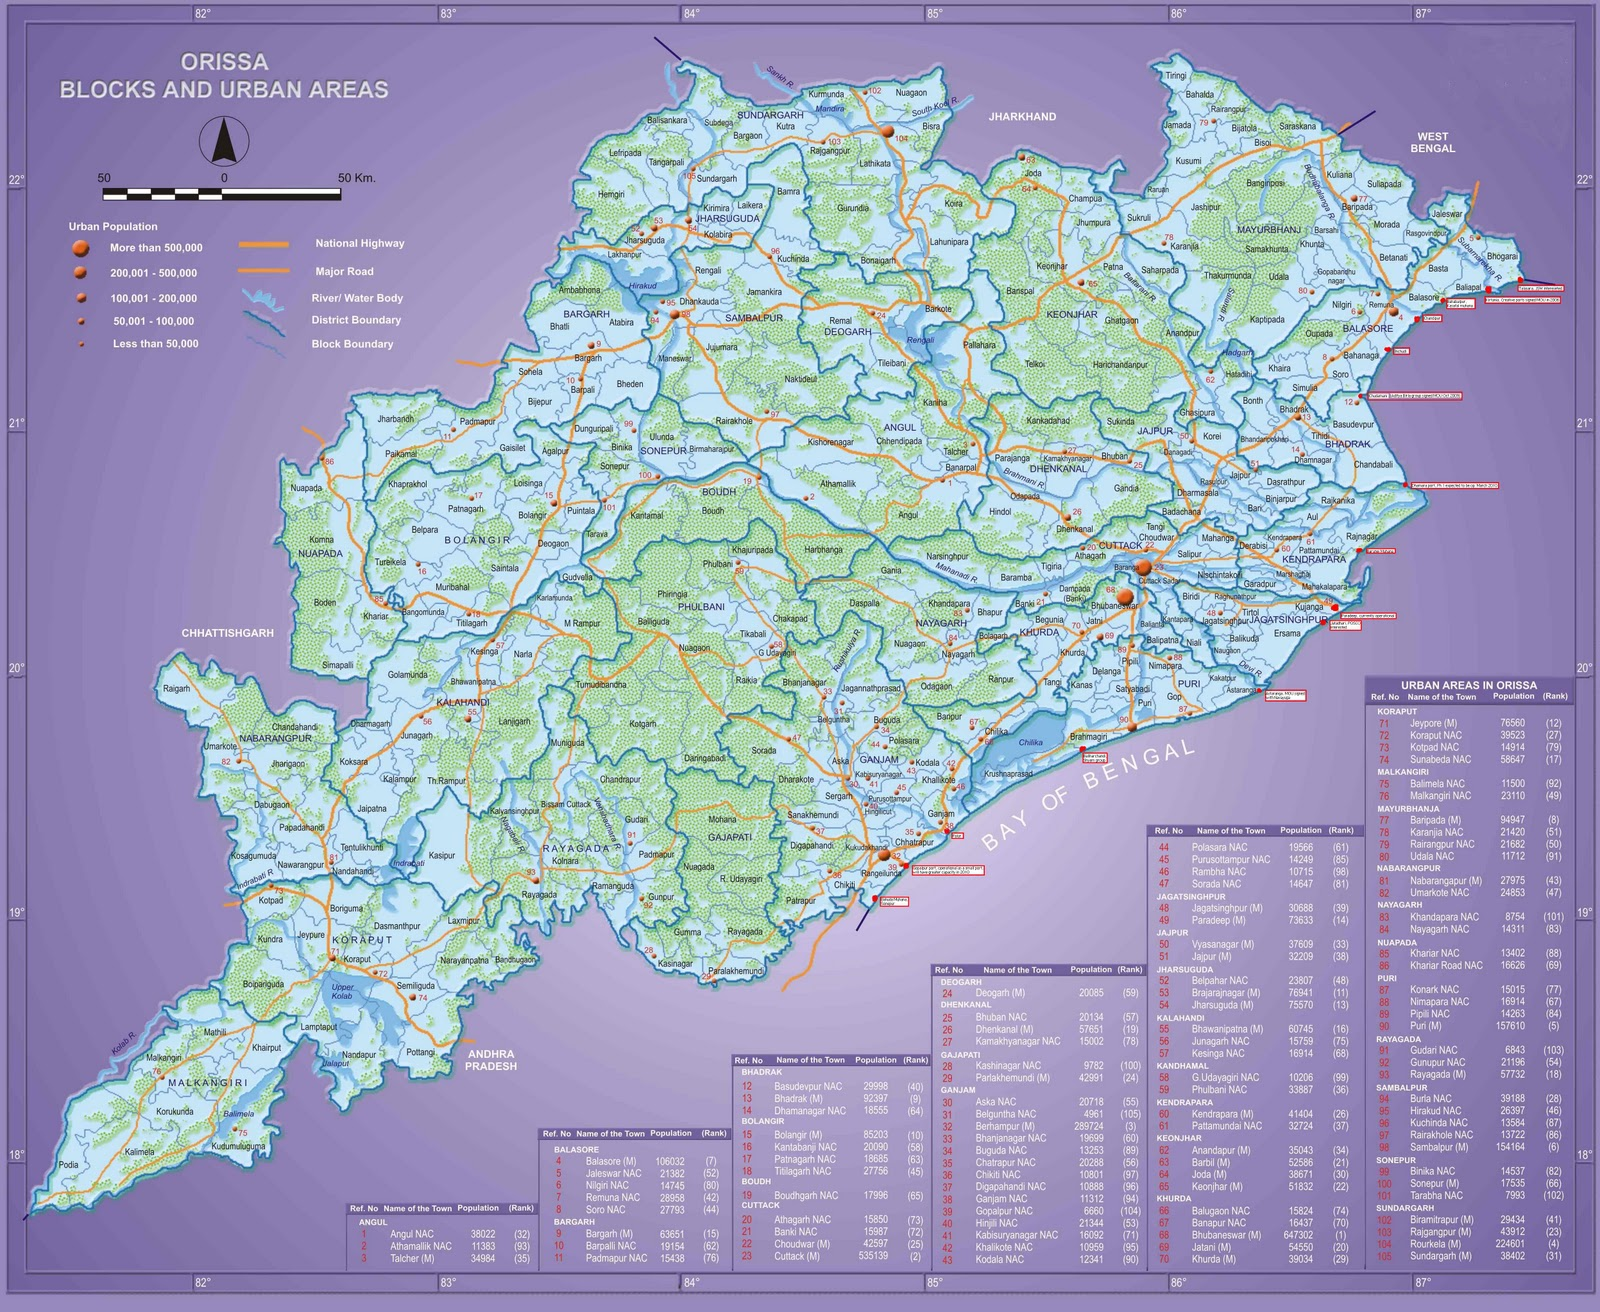 My State Map.Information About Odisha District Of Orissa My State And Culture Map